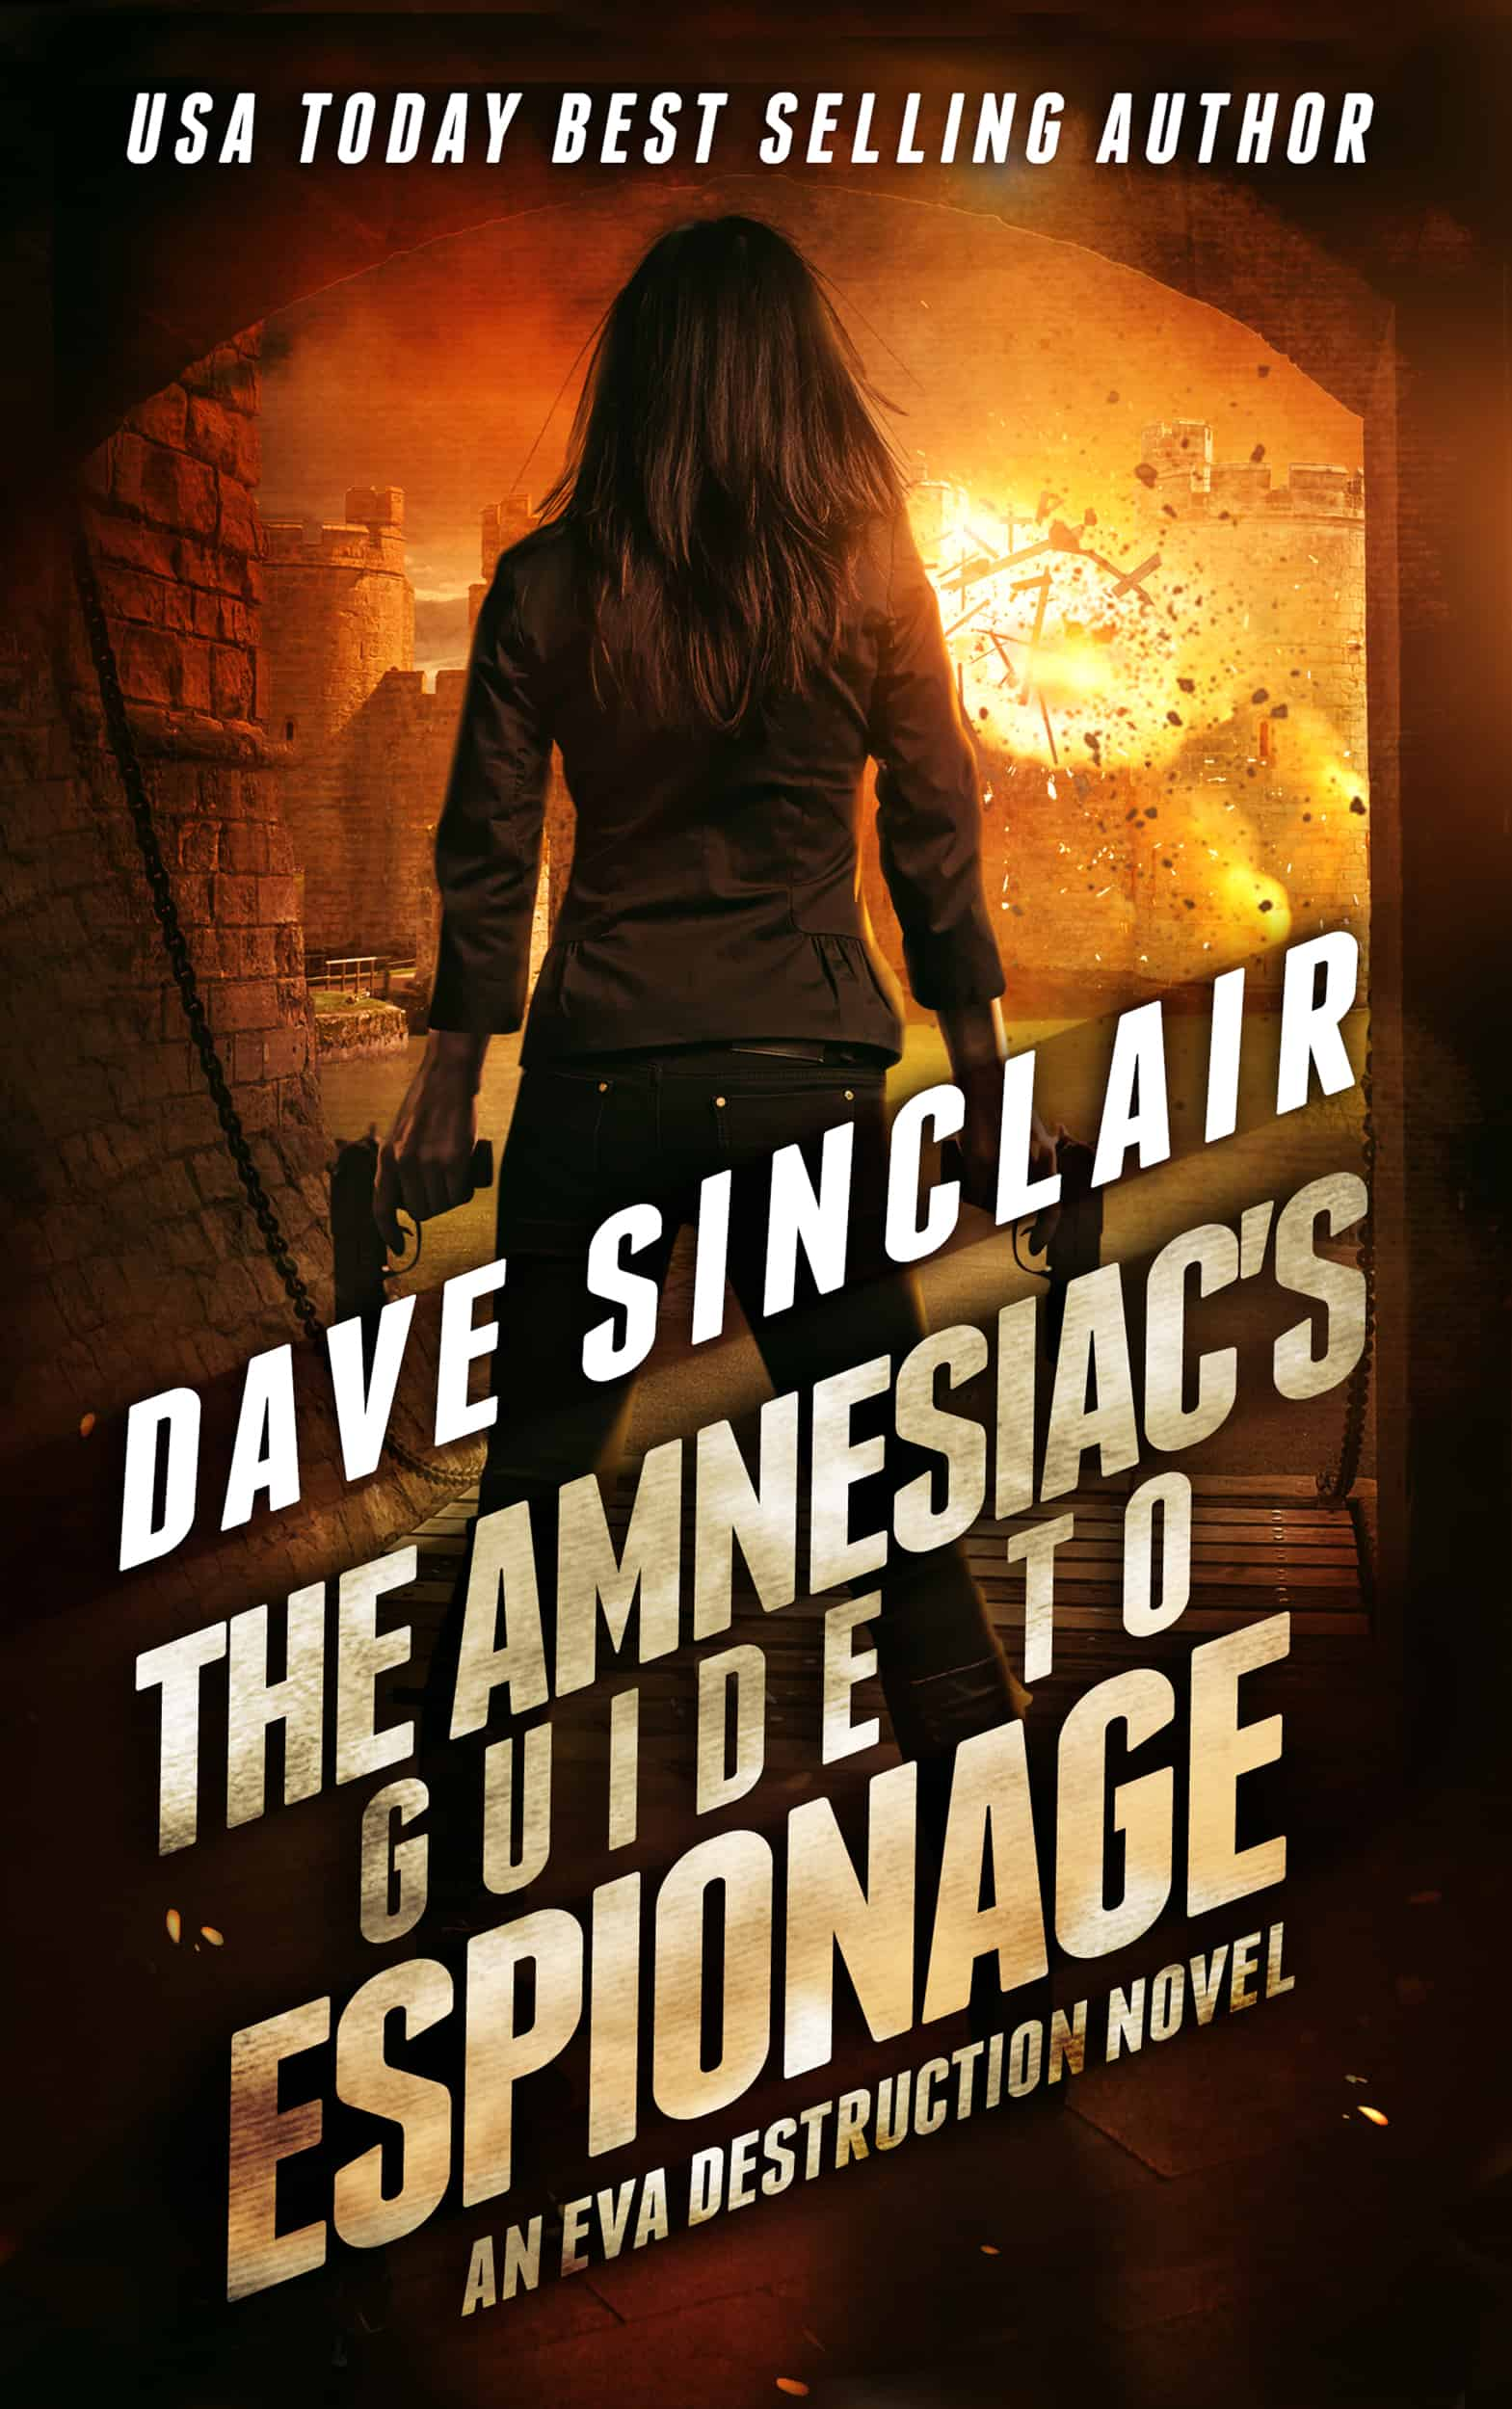 The Amnesiac's Guide to Espionage (Eva Destruction #2)